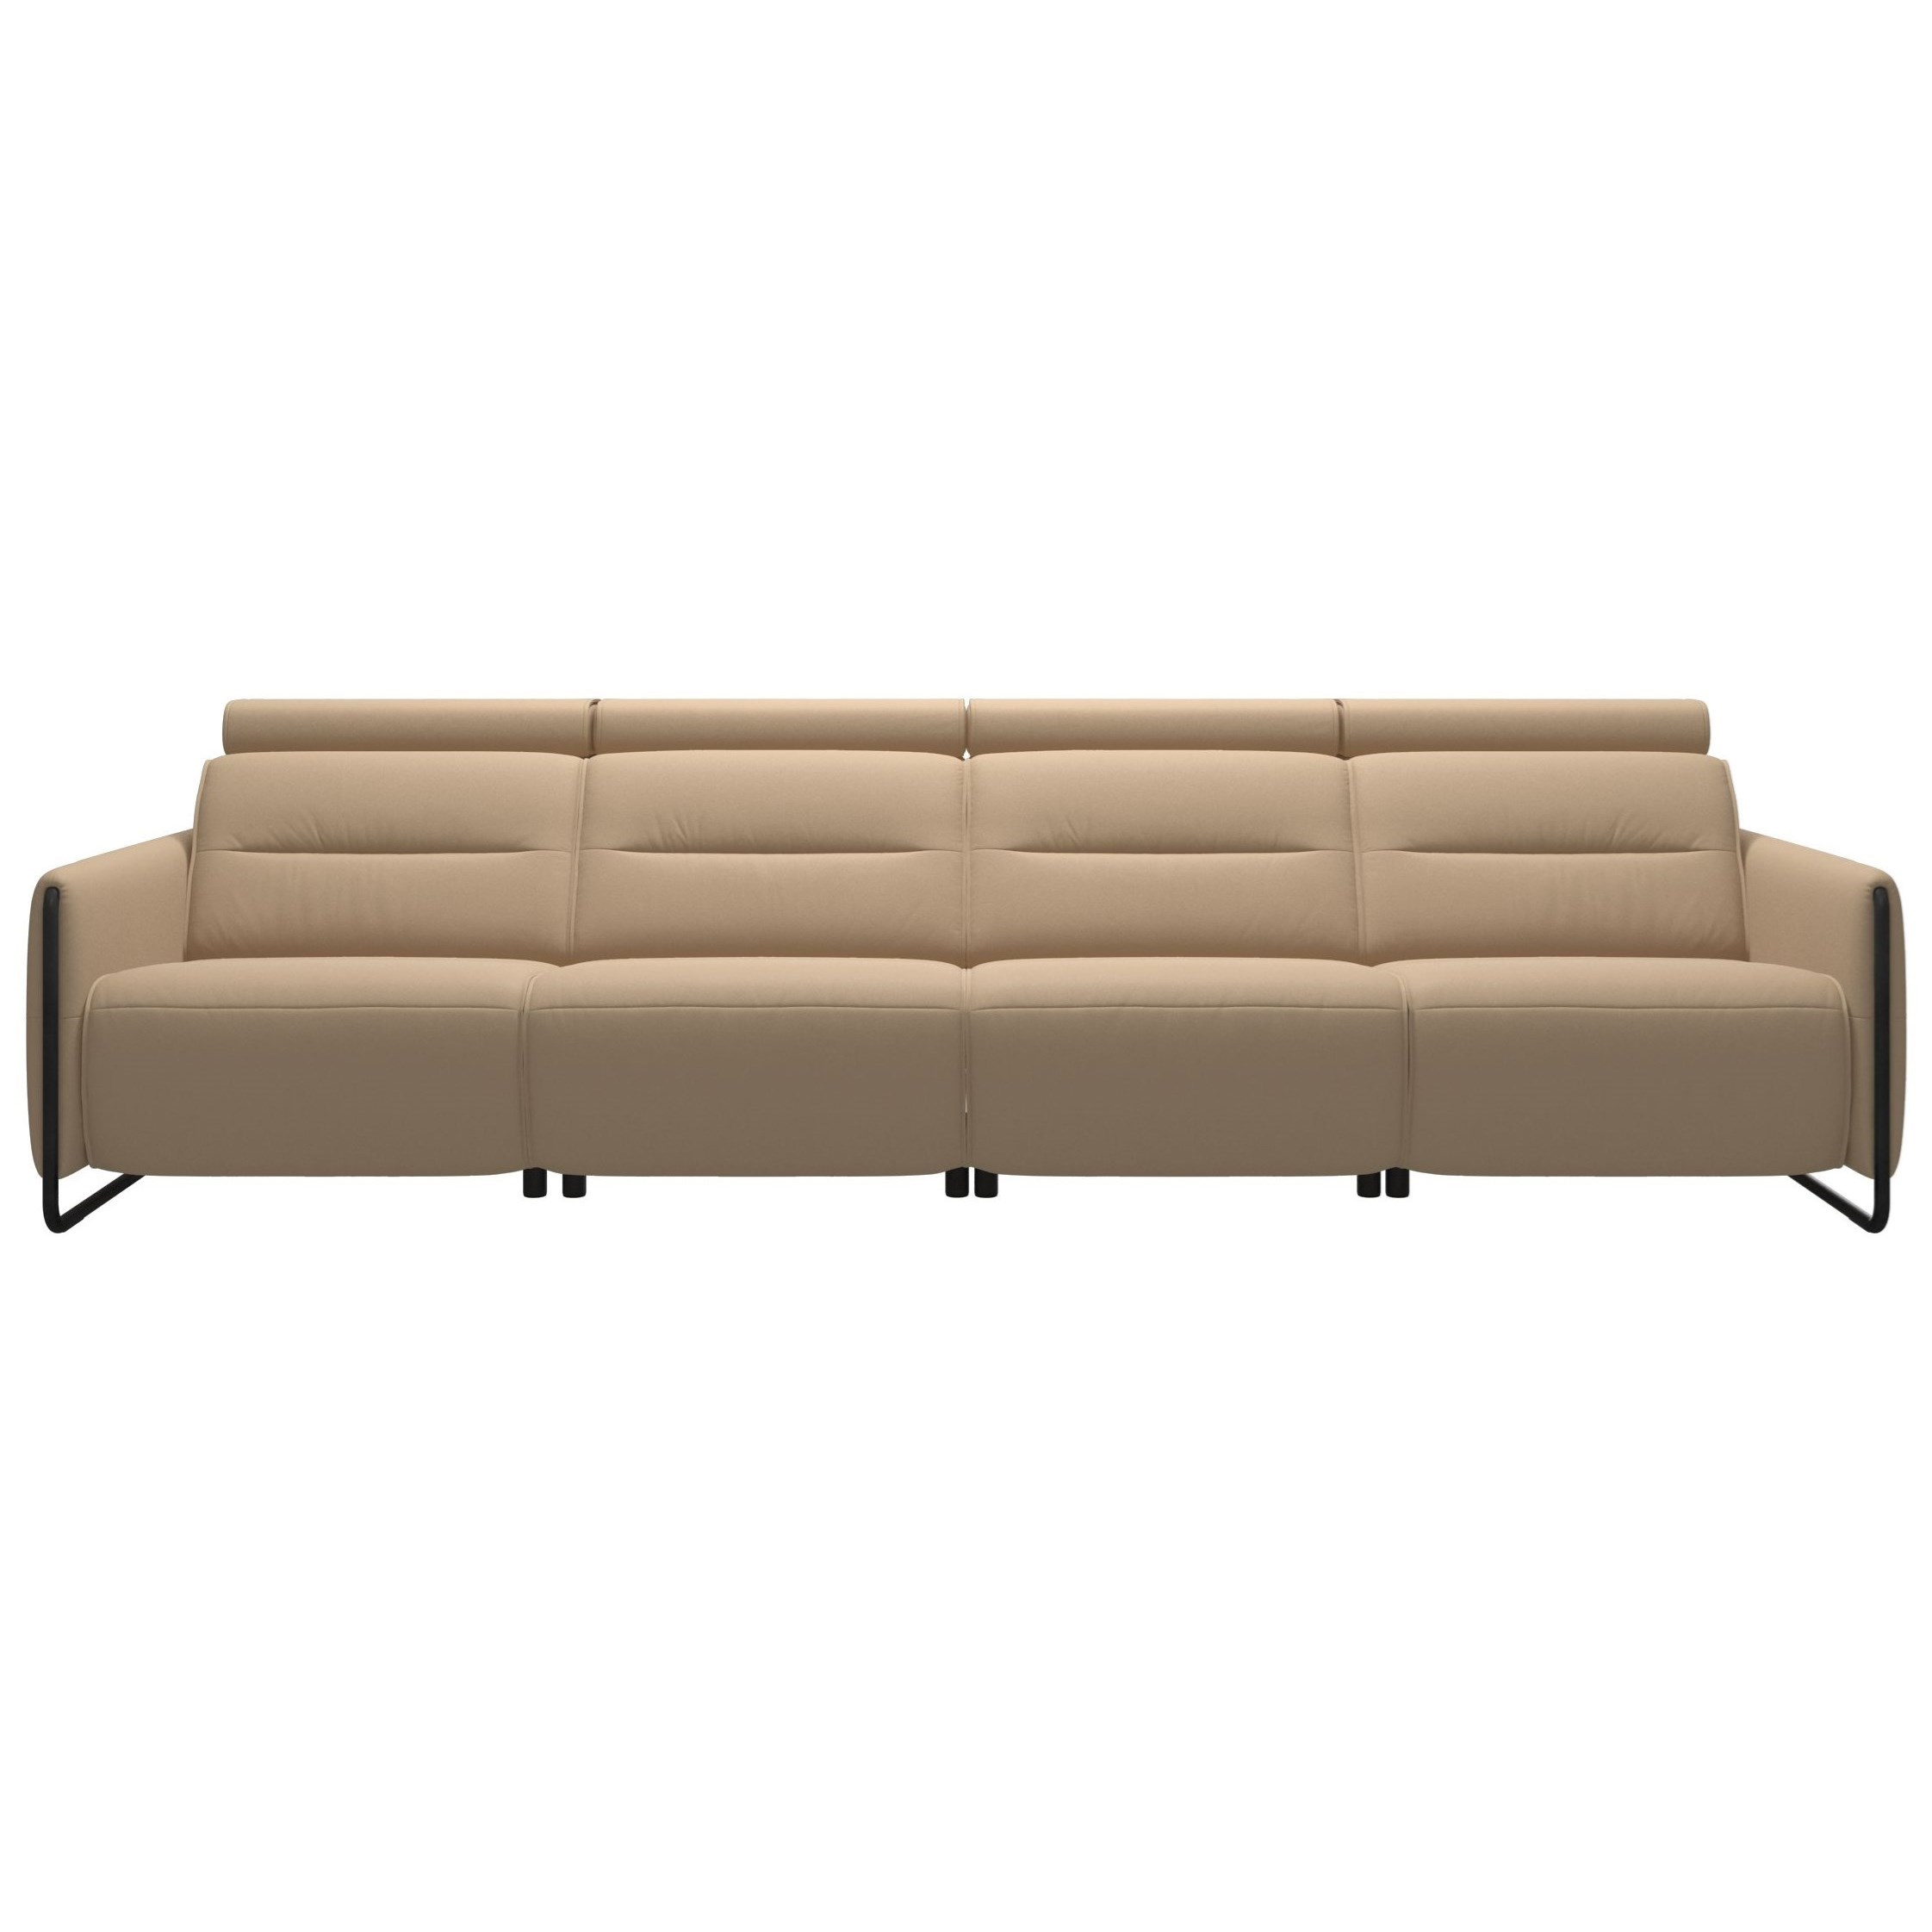 Emily Power 4-Seat Sofa with Steel Arms by Stressless at Jordan's Home Furnishings